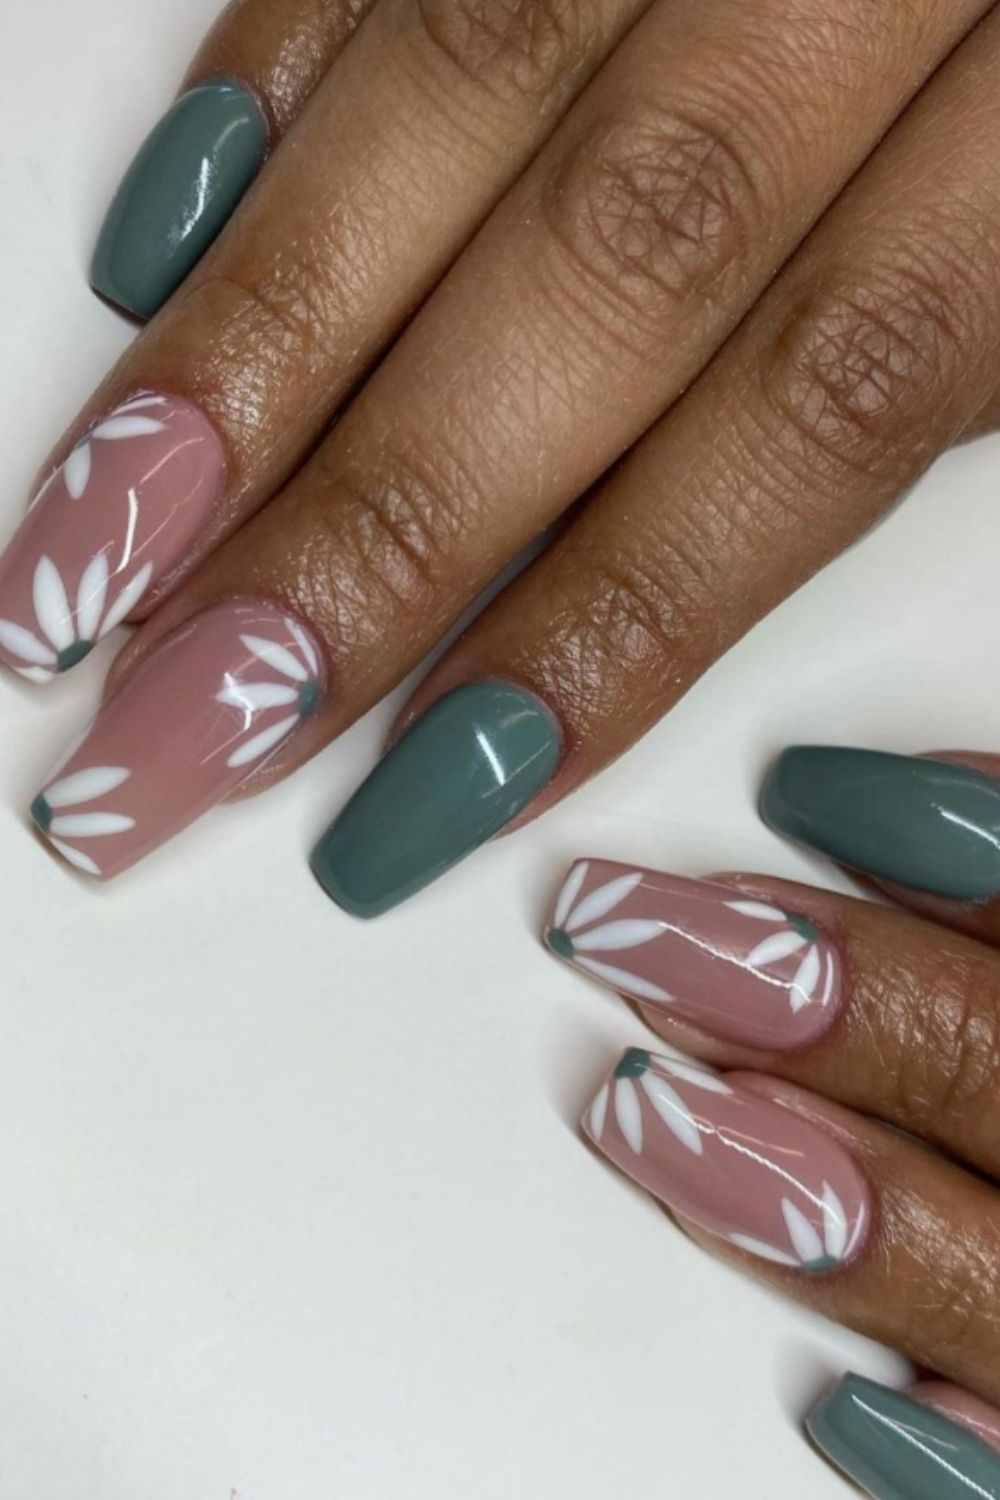 Coffin nails art with flower